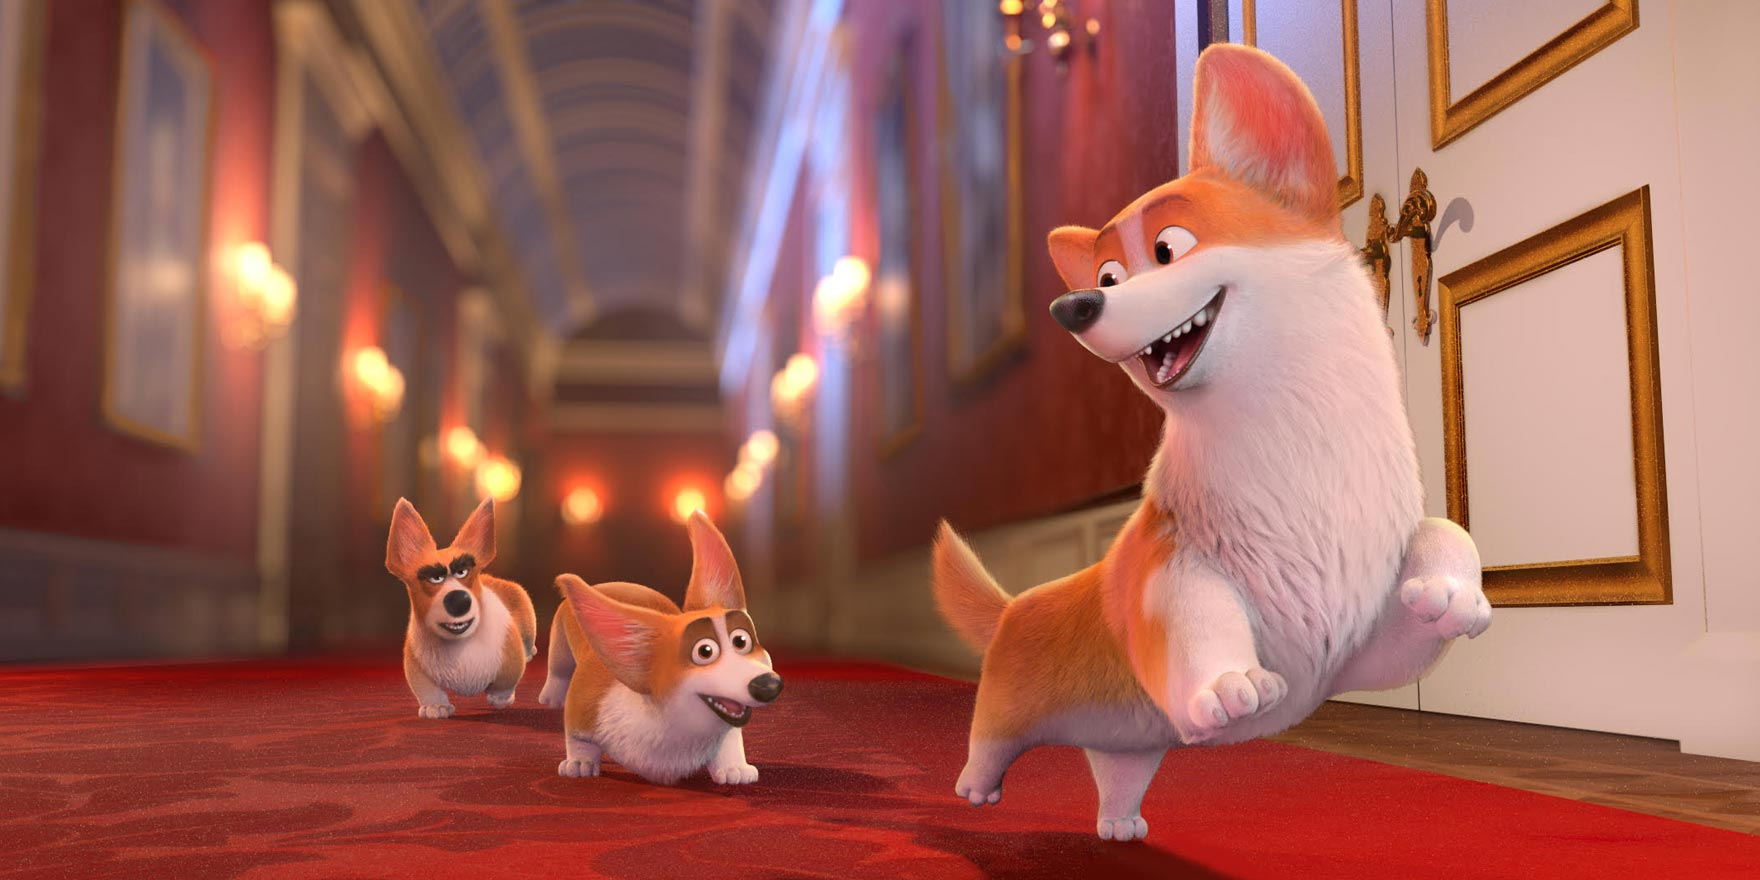 Royal Corgi - Header Image